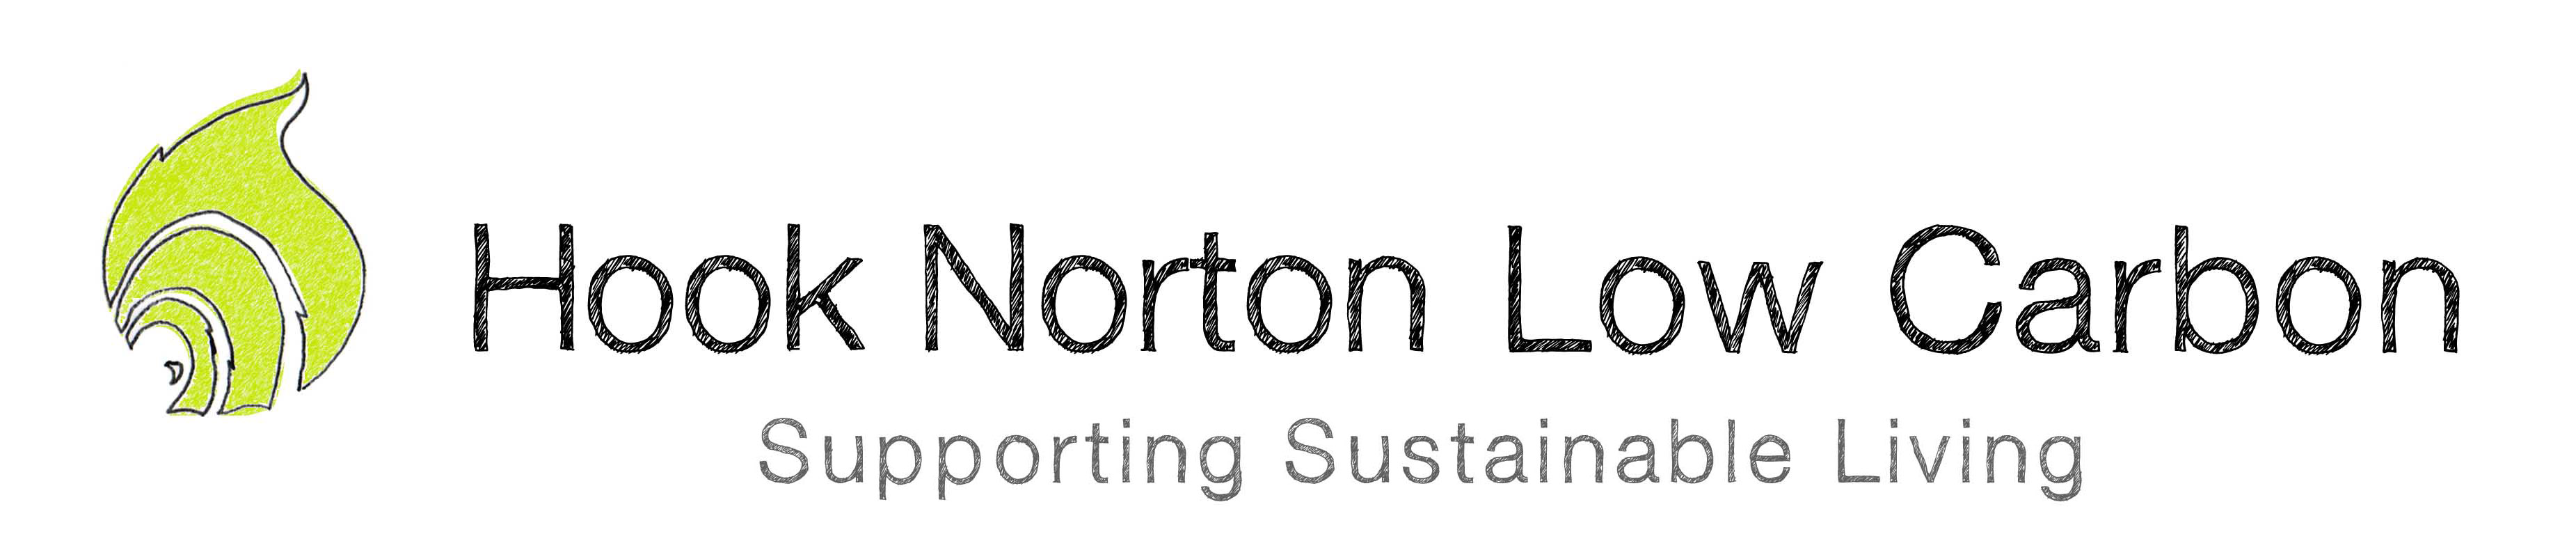 Hook Norton Low Carbon